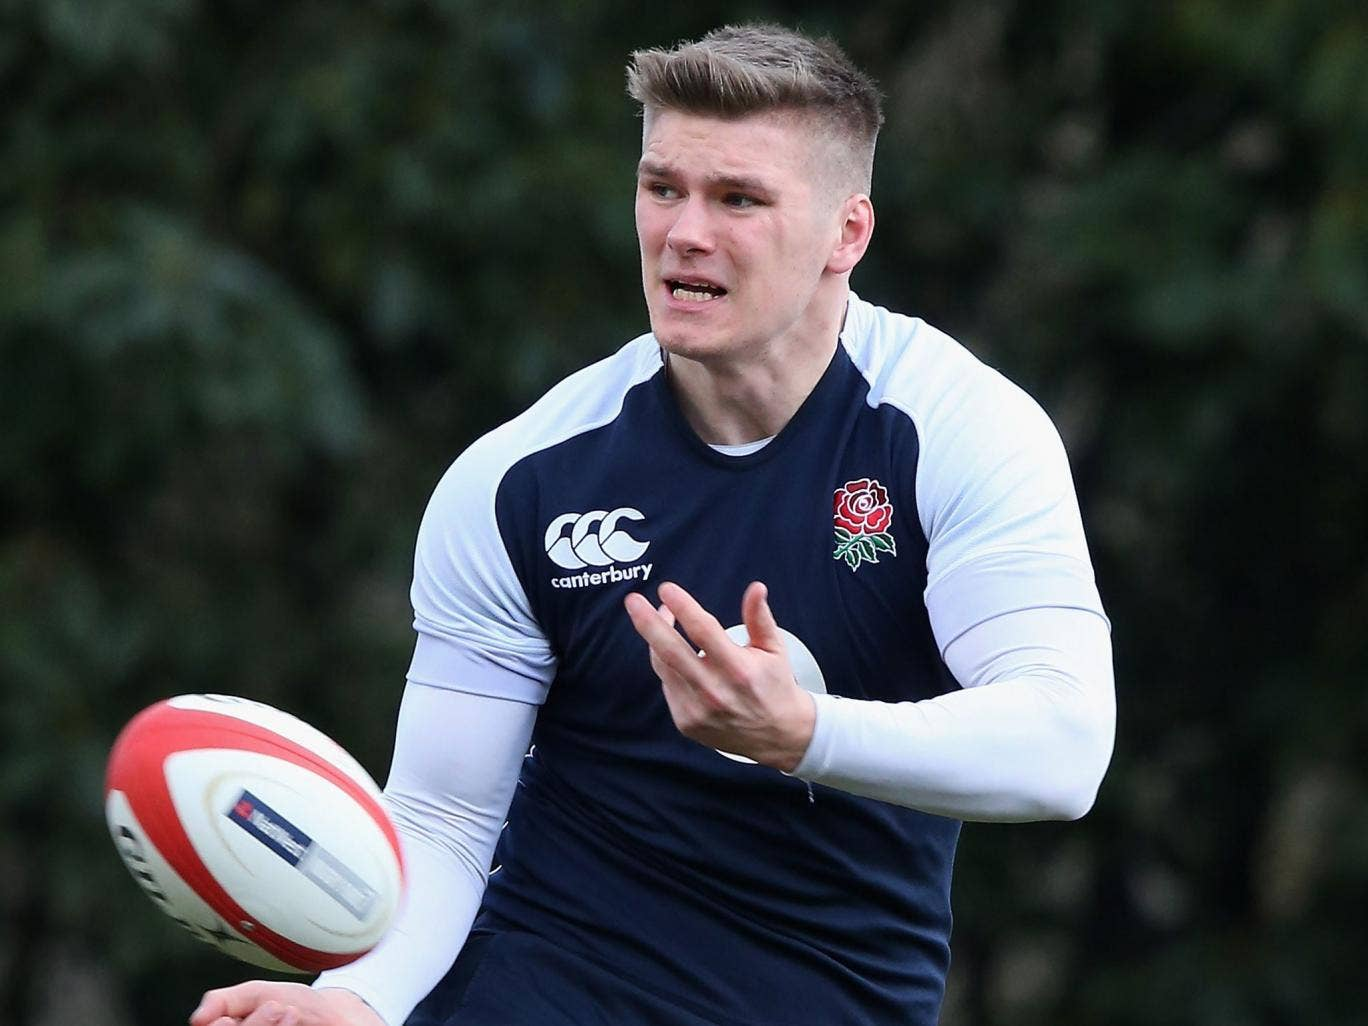 Owen Farrell passes the ball during England training at Pennyhill Park